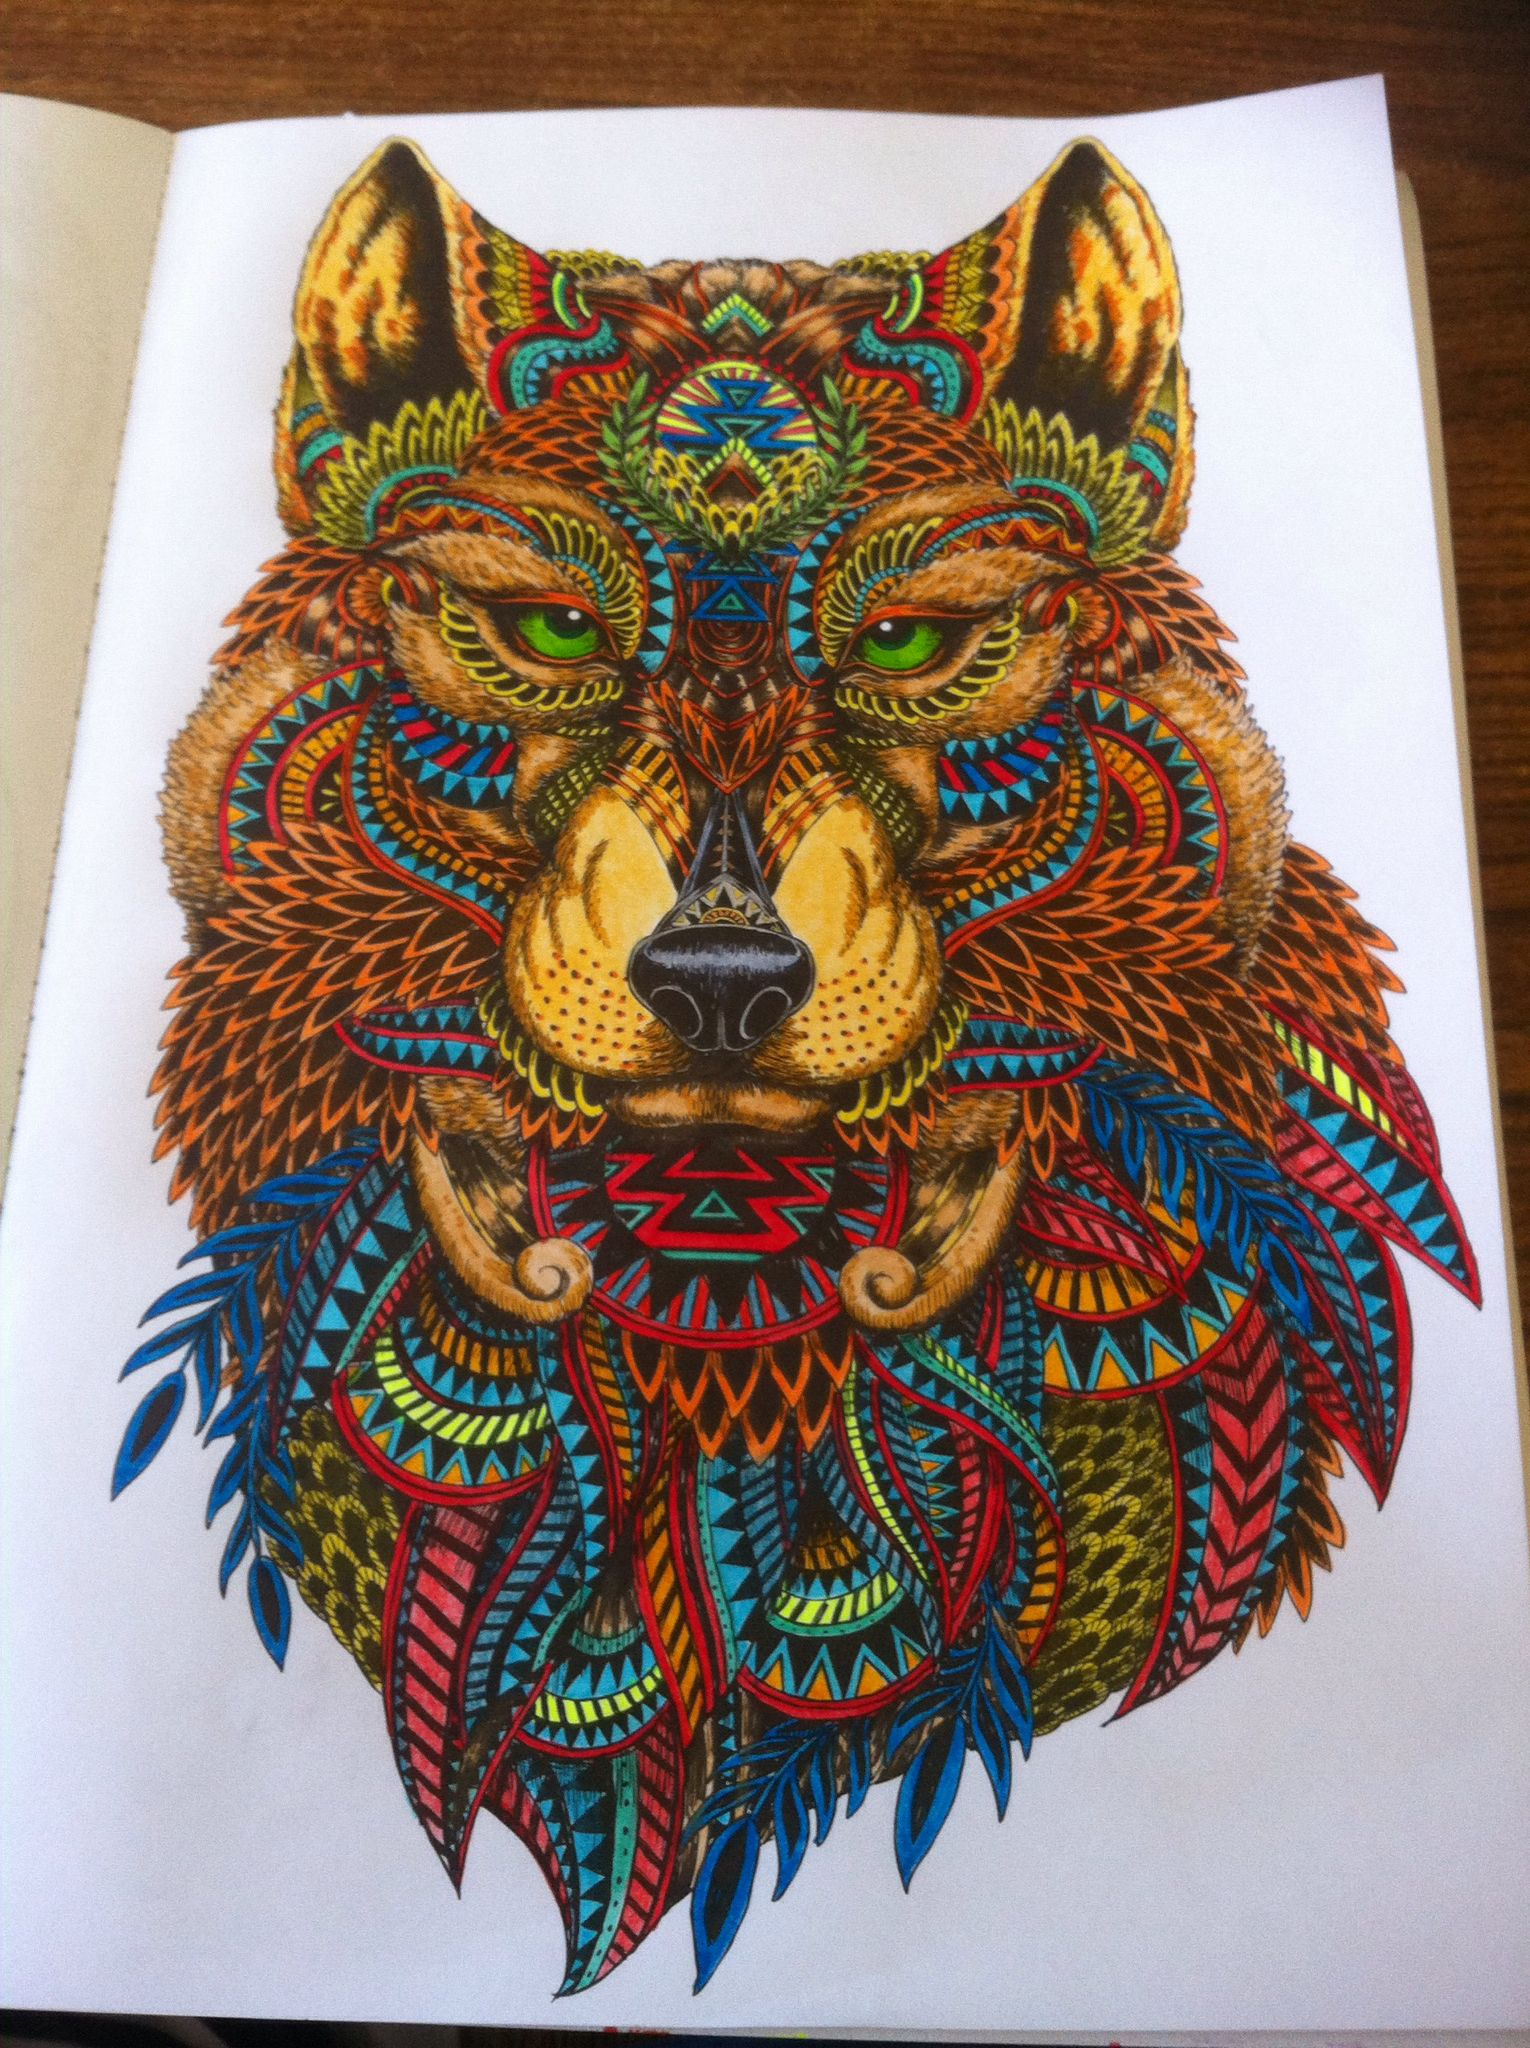 Color drawing pens for artists - Wolf From Art Therapy Menagerie More Faber Castels Gel Pens And Crayola Pencils Adult Coloringcoloring Bookscoloring Pagesdrawing